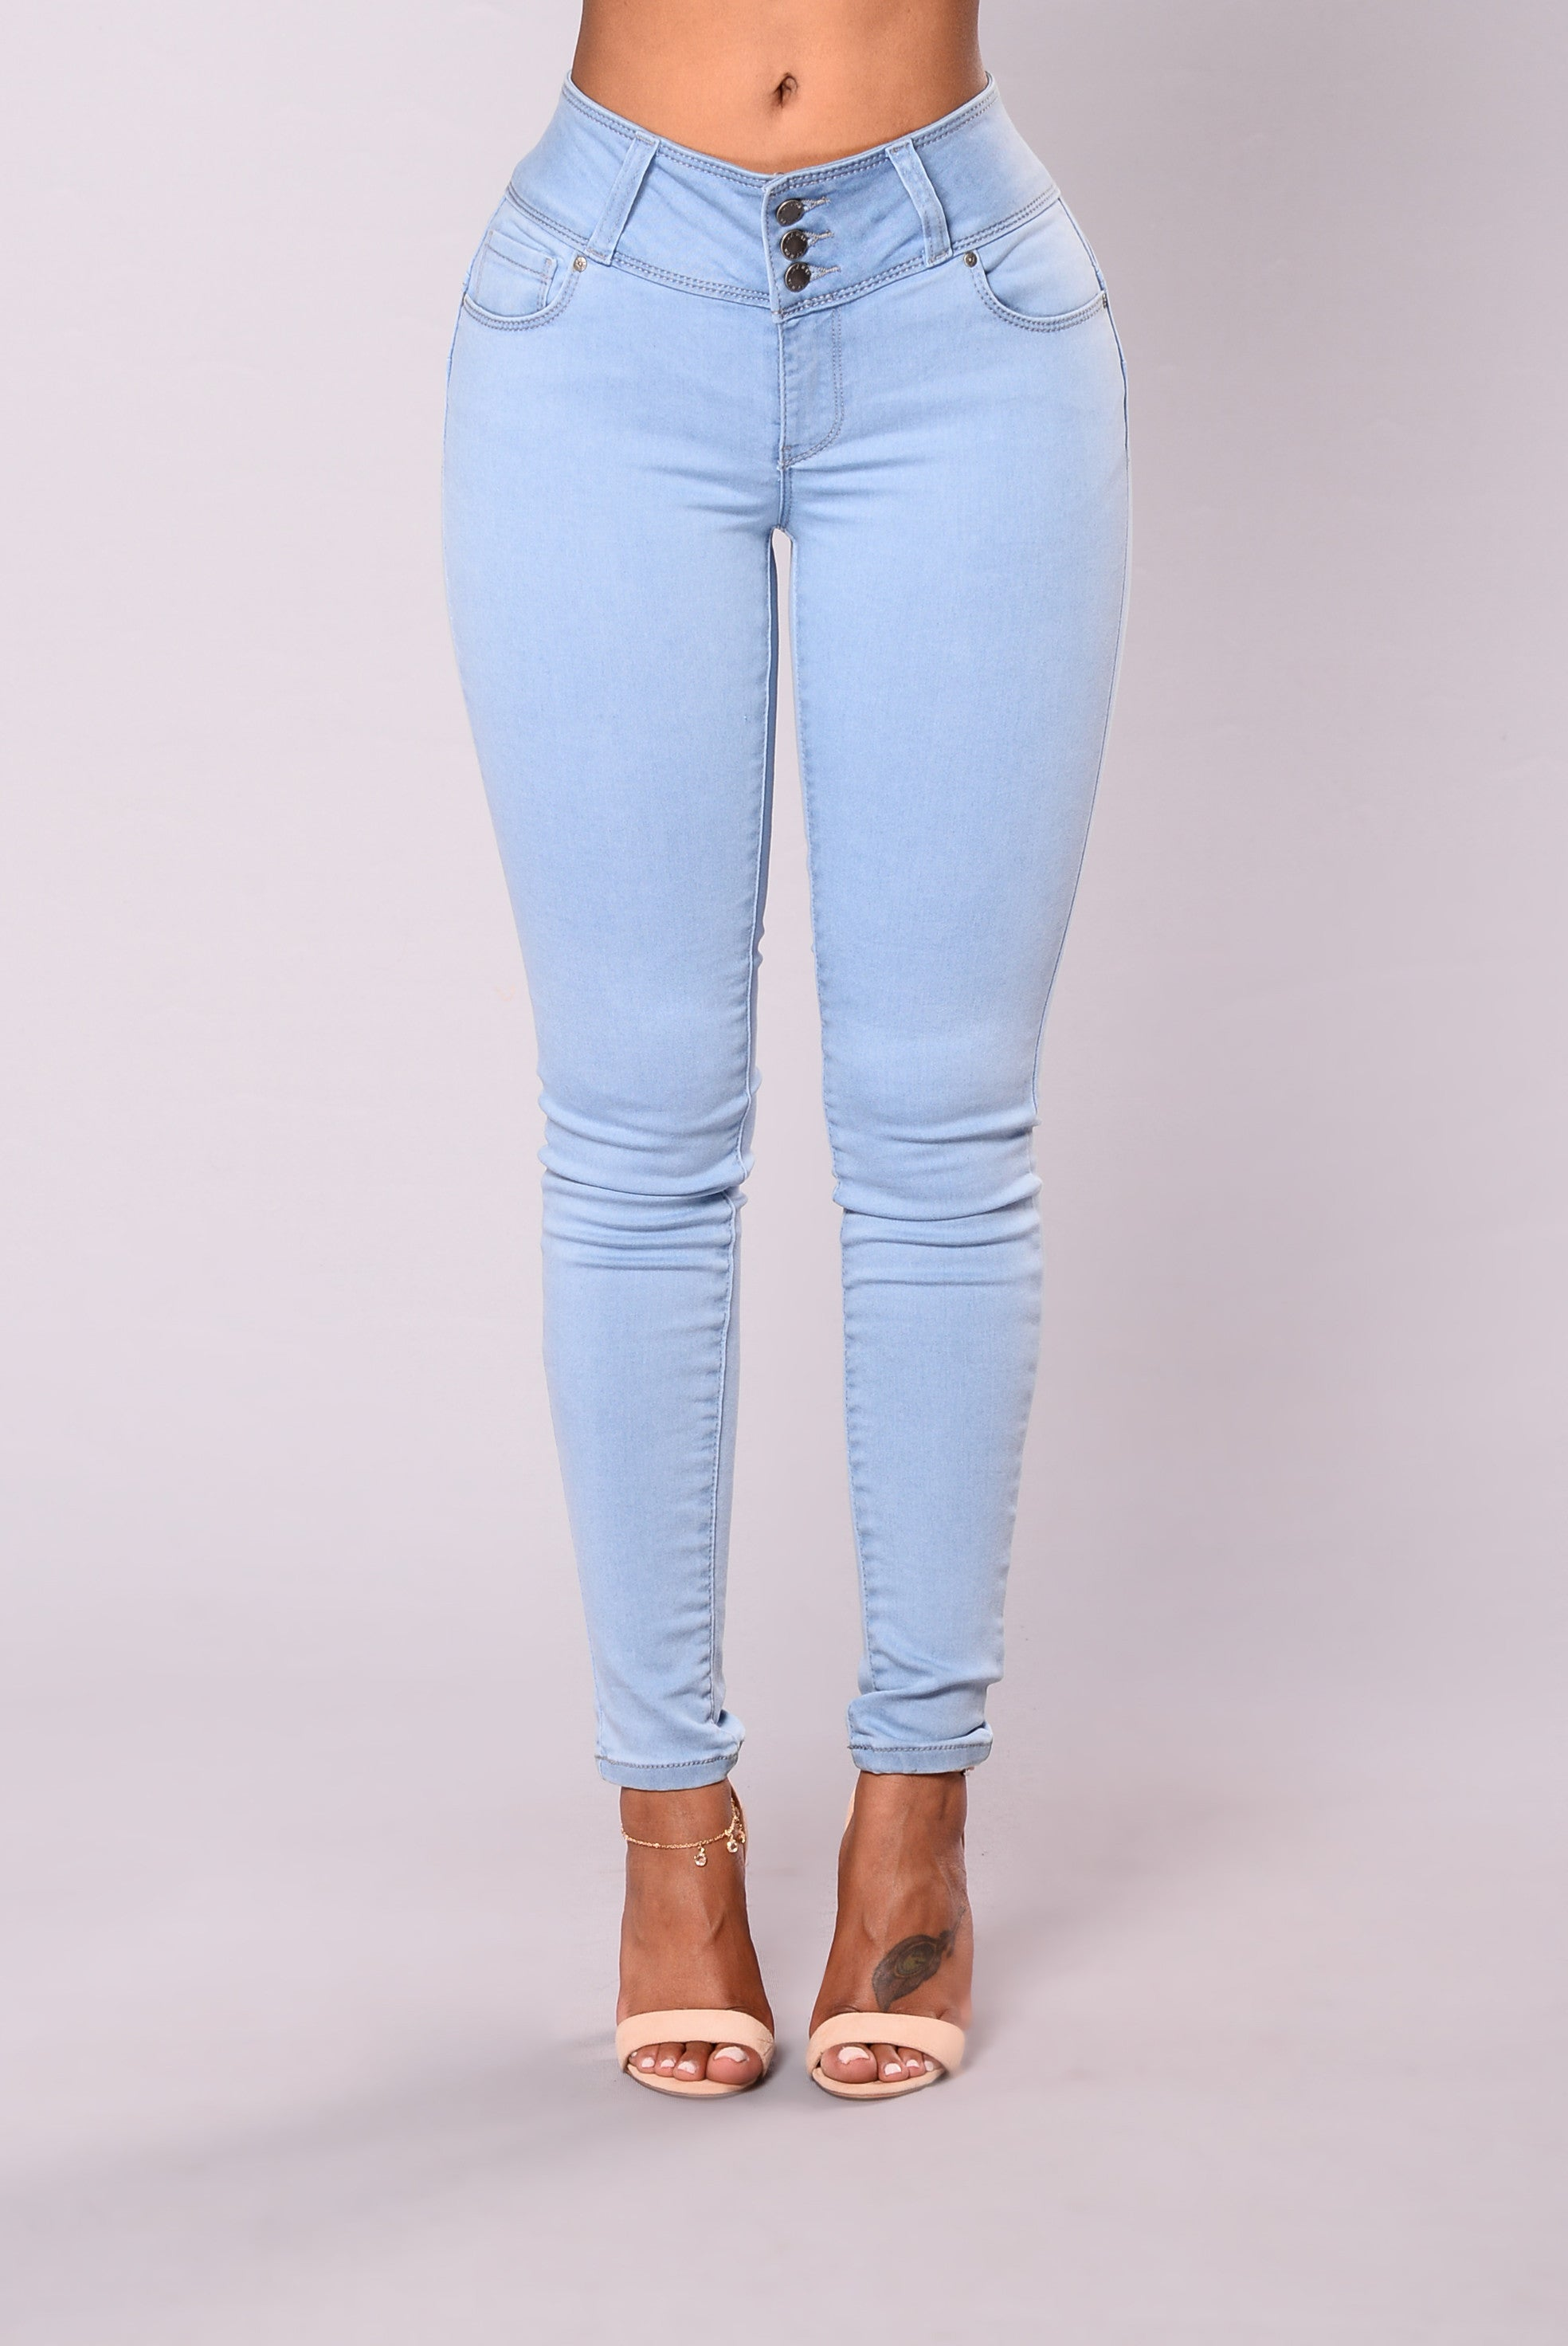 Round booty in jeans-5402